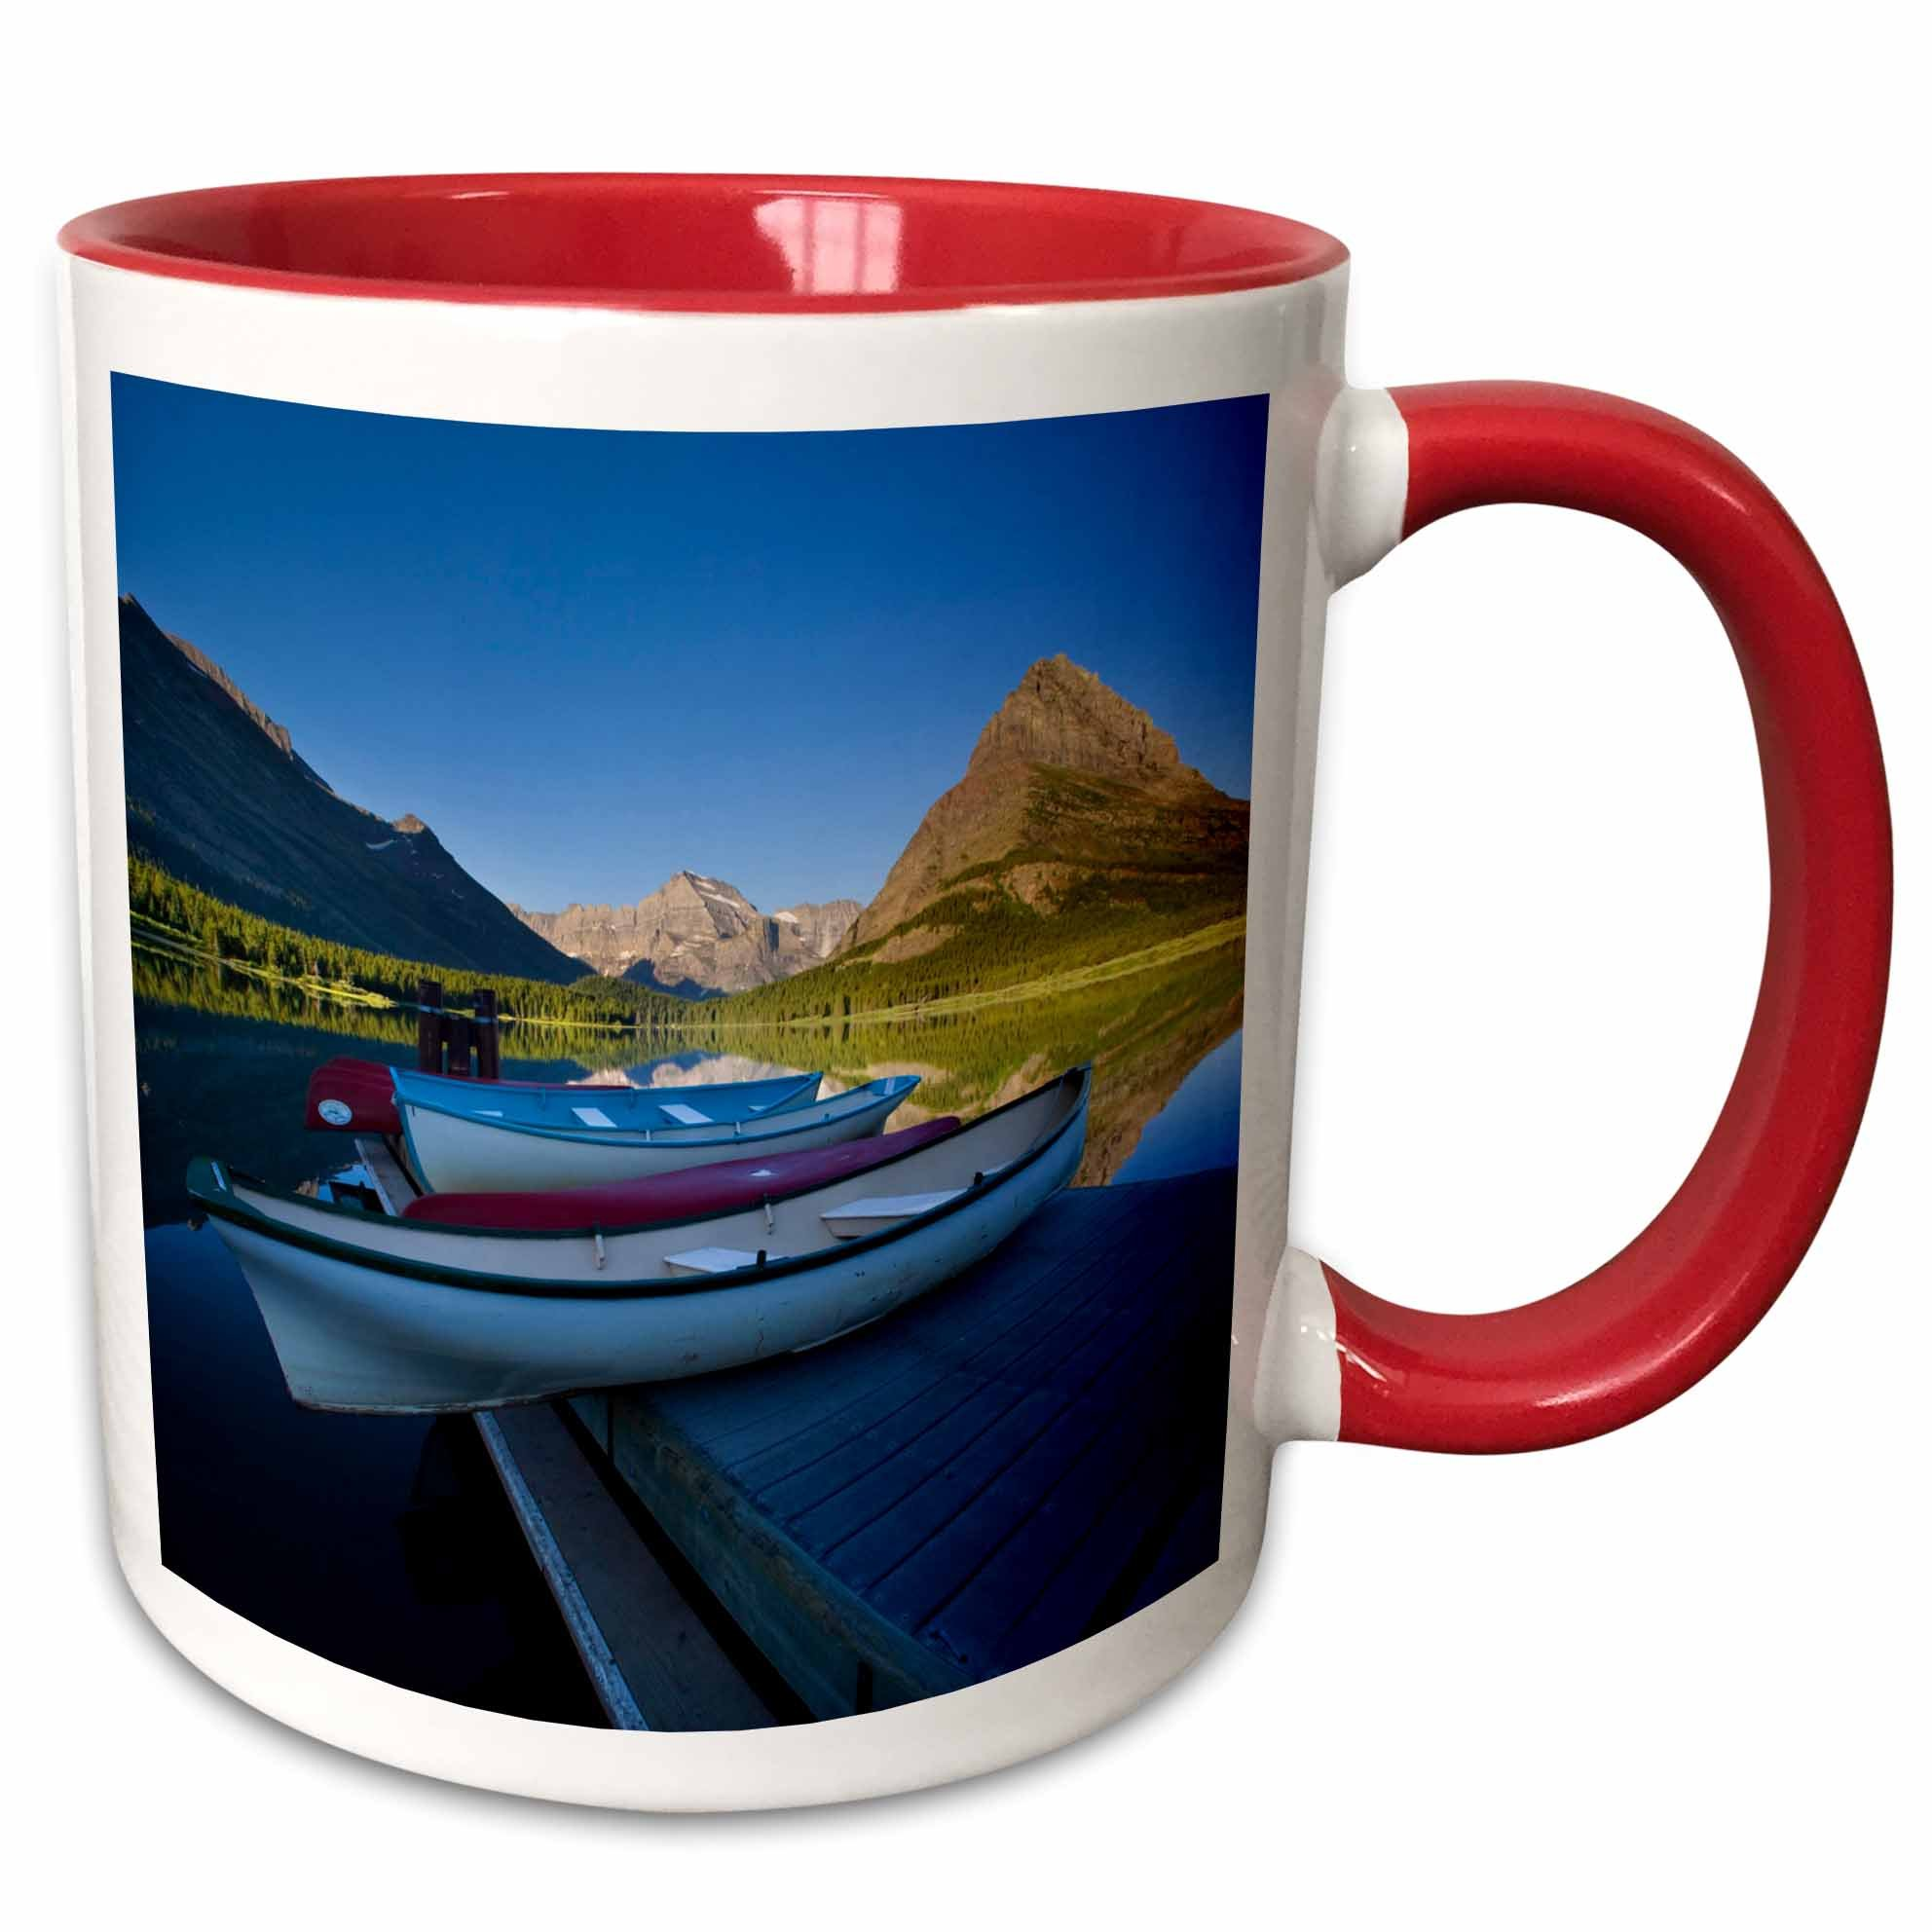 3D Rose 91658_5 Watercraft, Many Hotel, Glacier NP, Montana US27 CHA0914 Chuck Haney Two Tone Ceramic Mug, Red